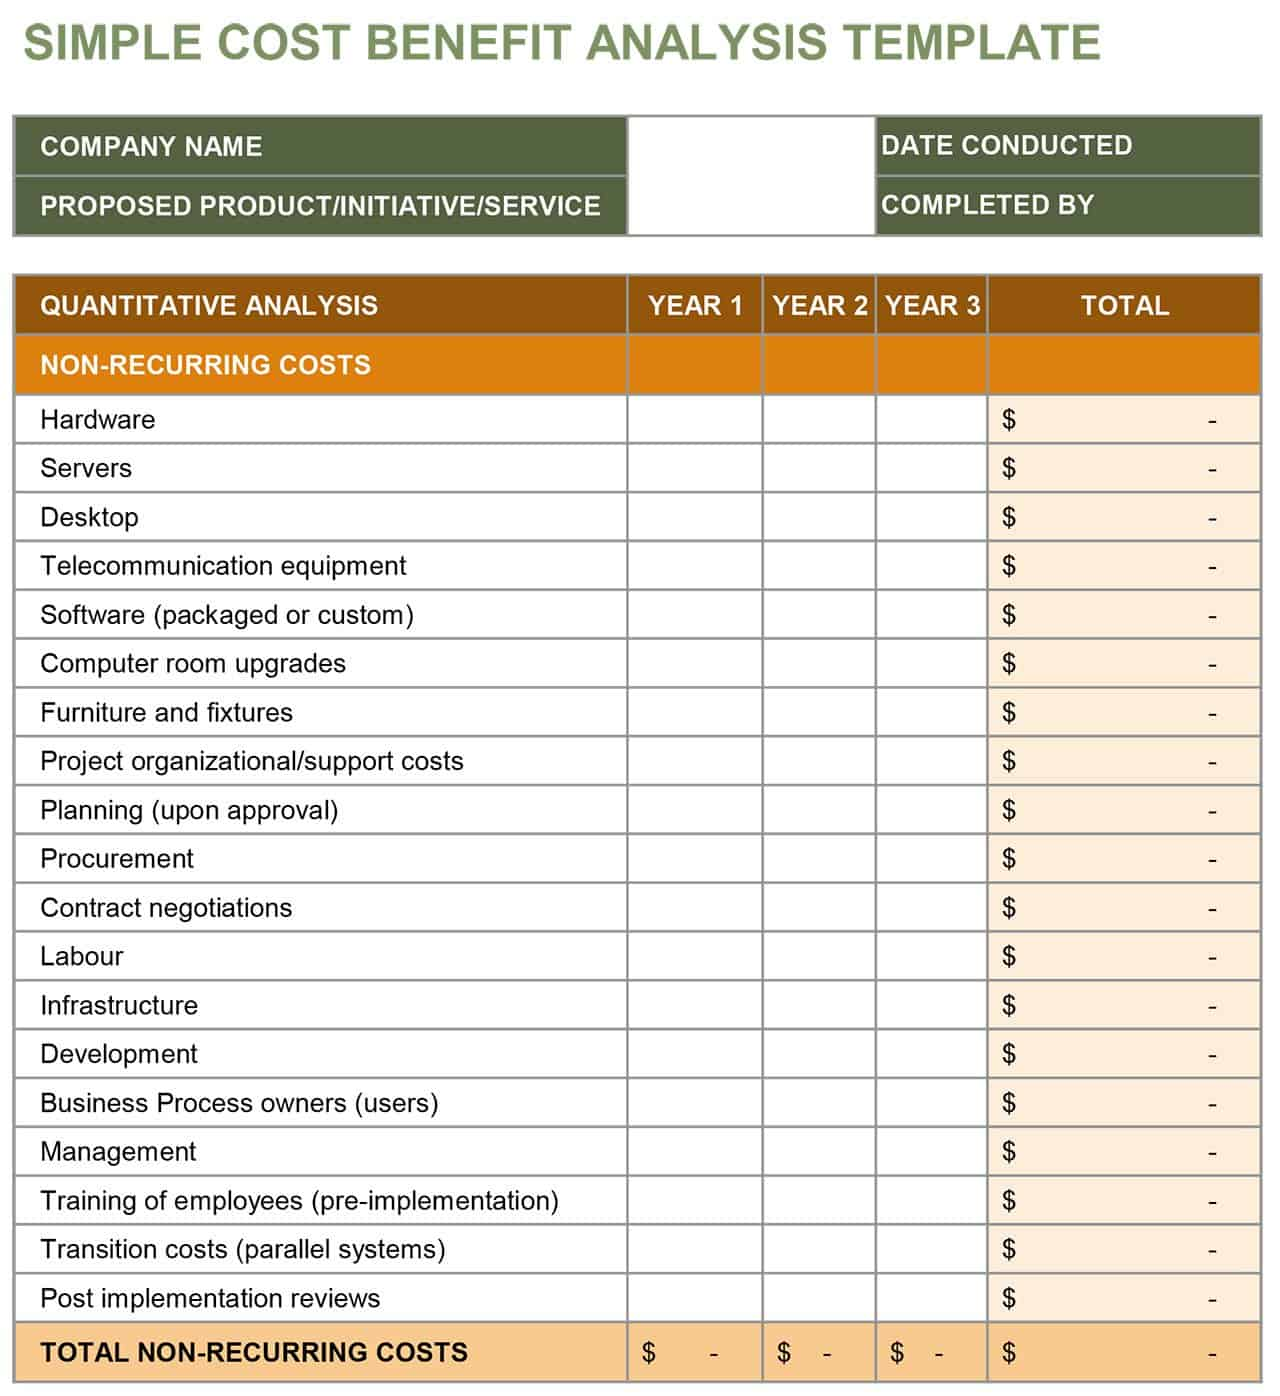 Download Simple Cost Benefit Analysis Template